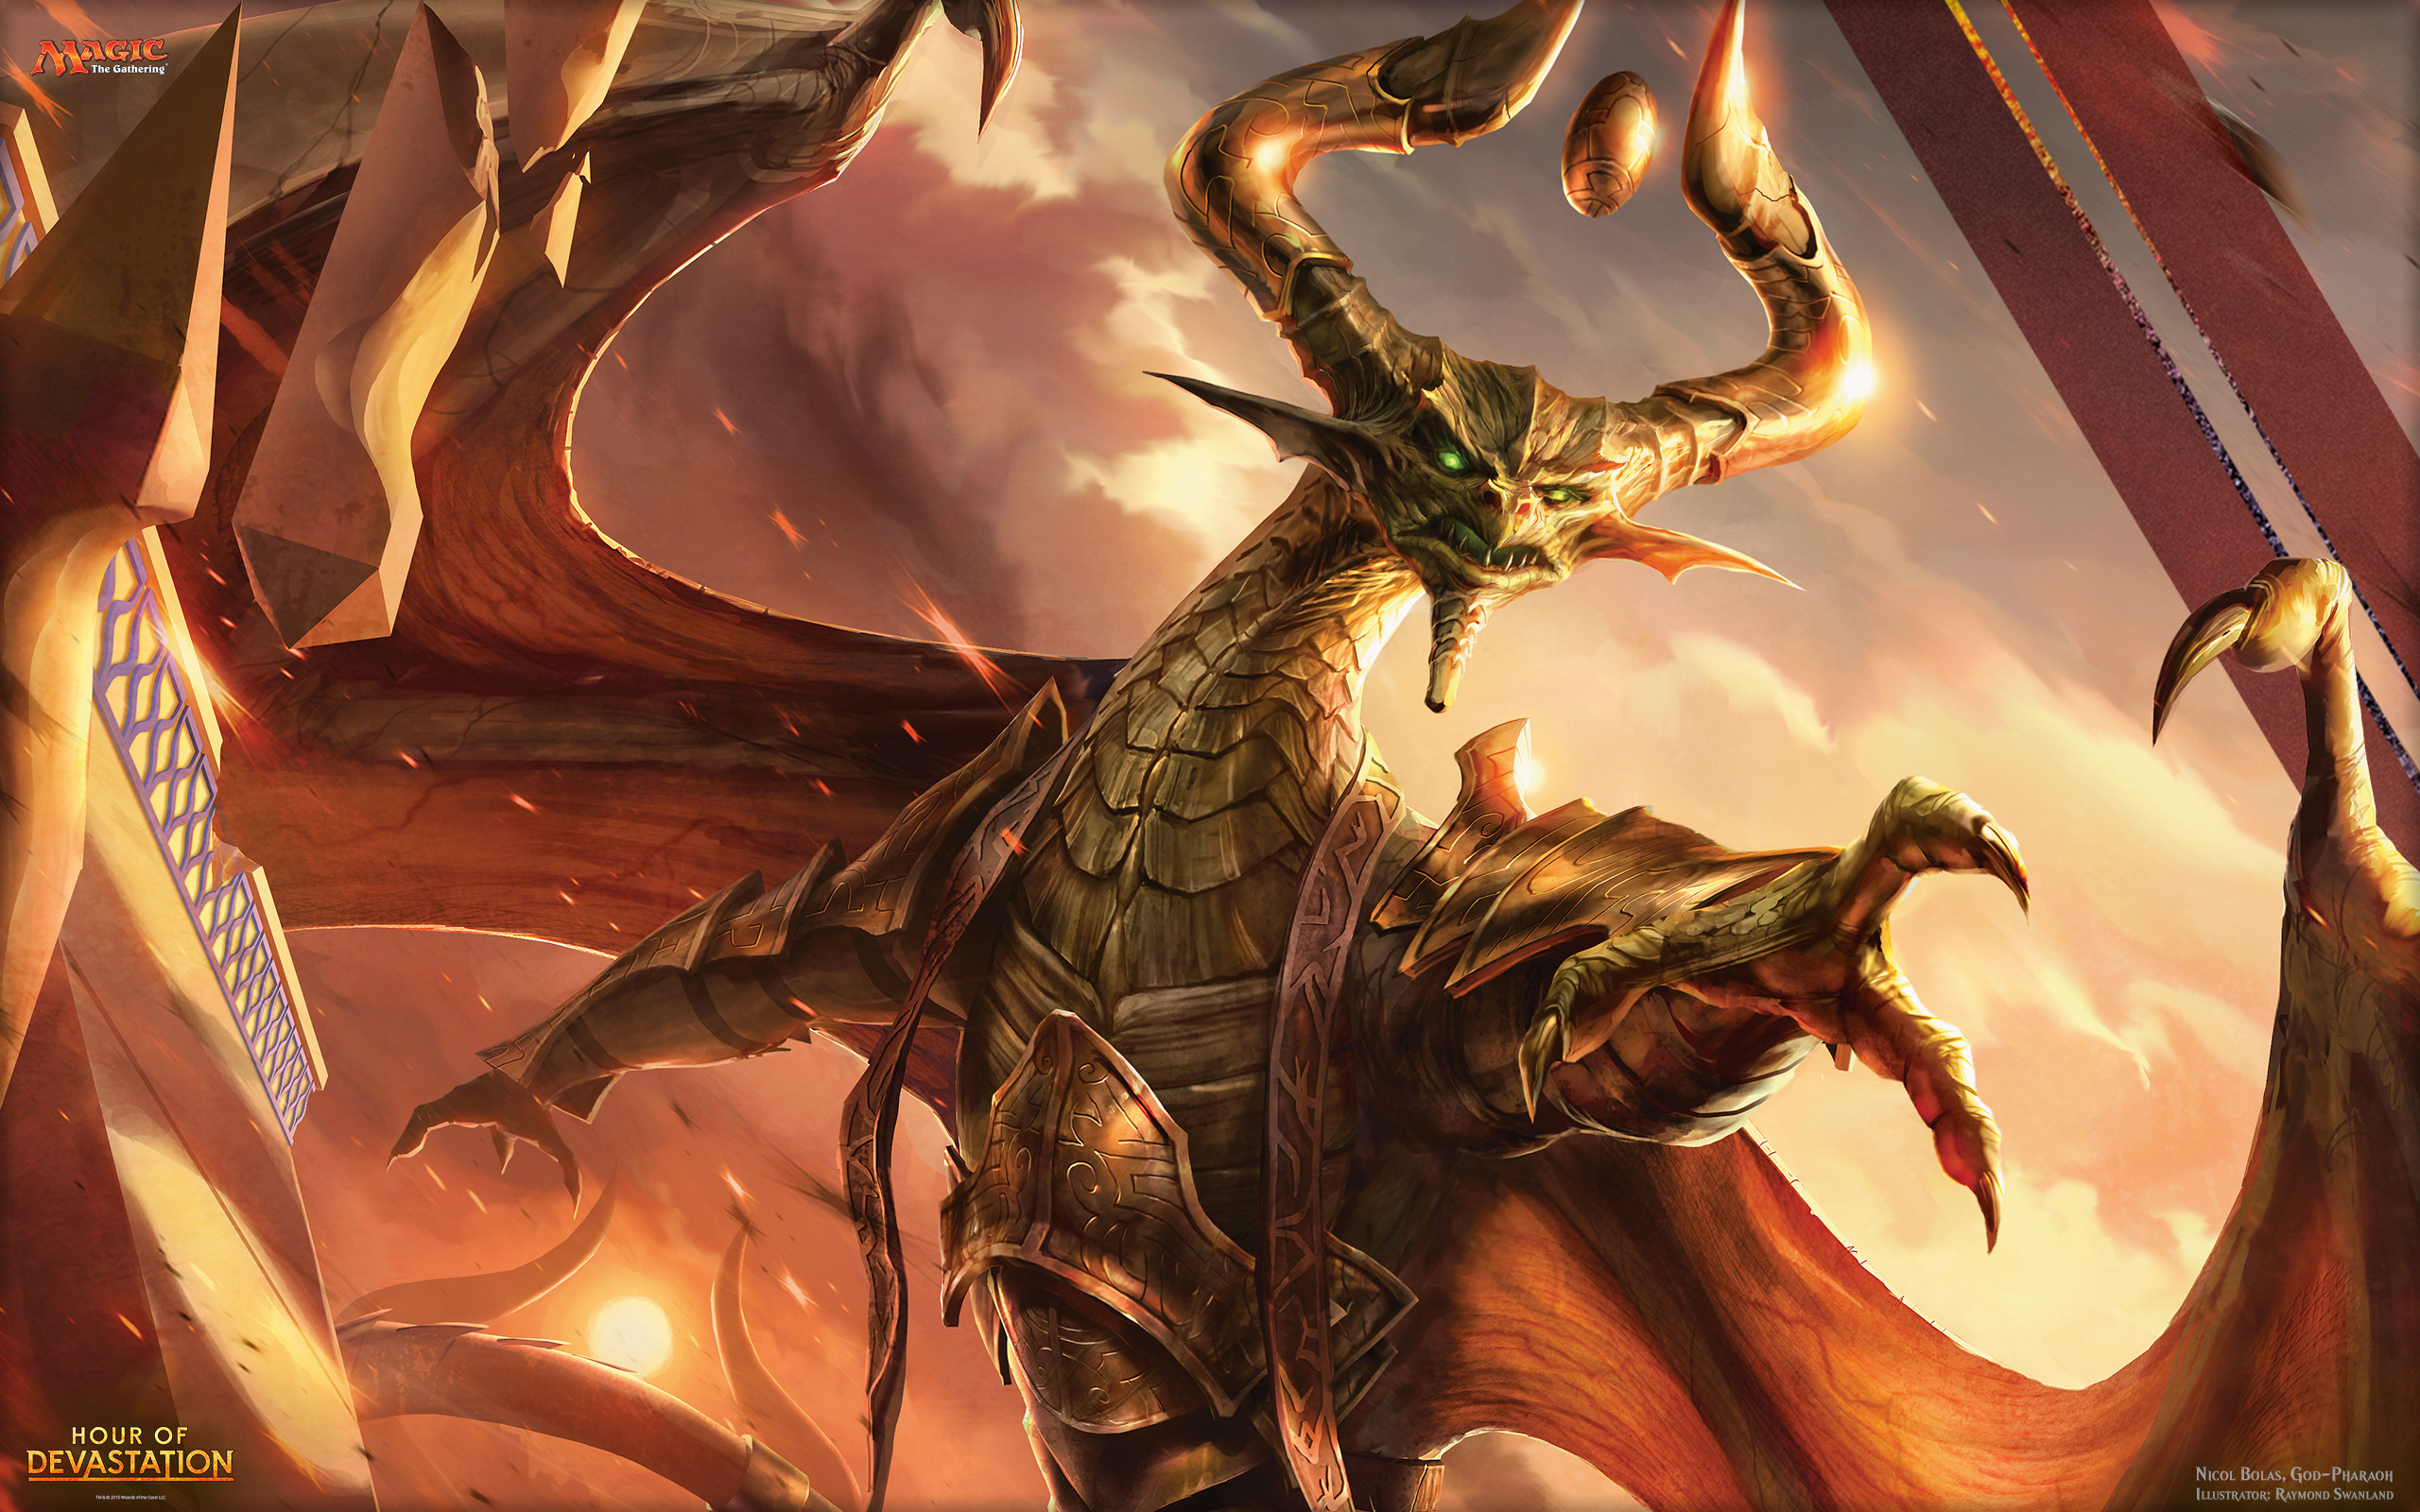 Magic_the Gathering_Nicol Bolas_by Raymond Swanland